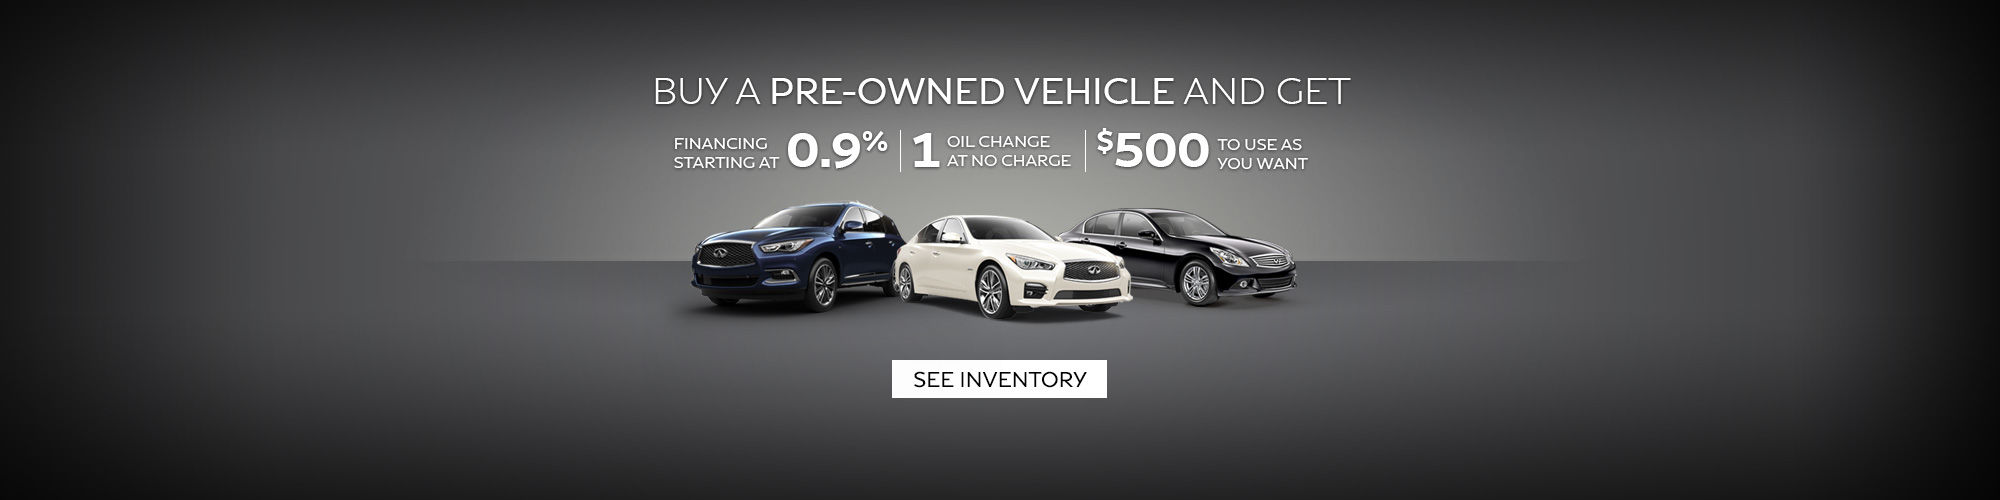 Infiniti Pre-owned Promotion